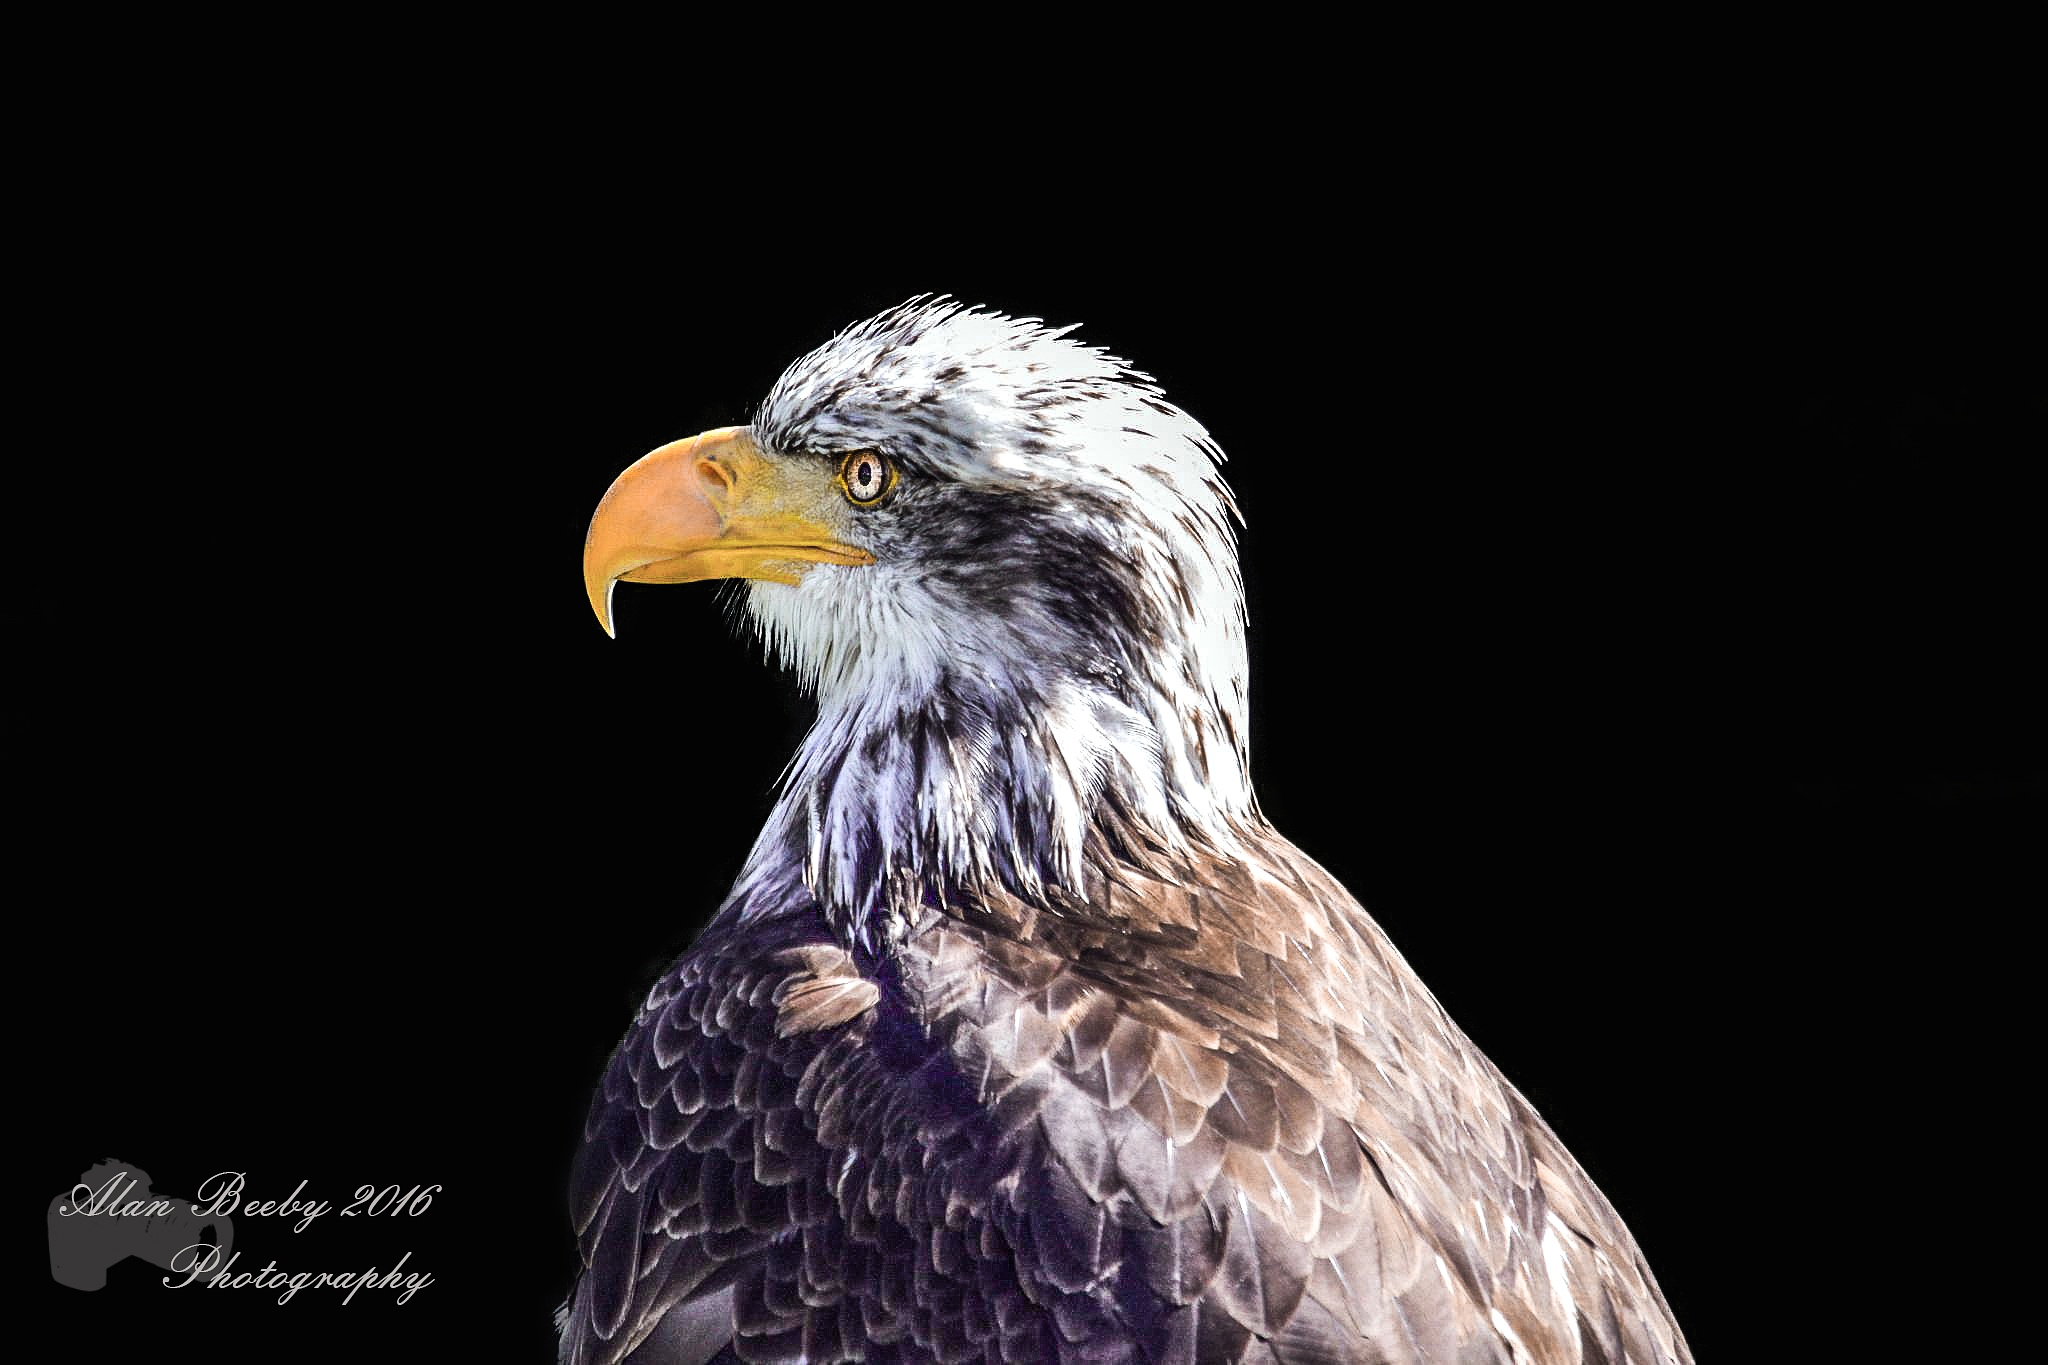 sea Eagle/zee Arend 2 by Alan beeby